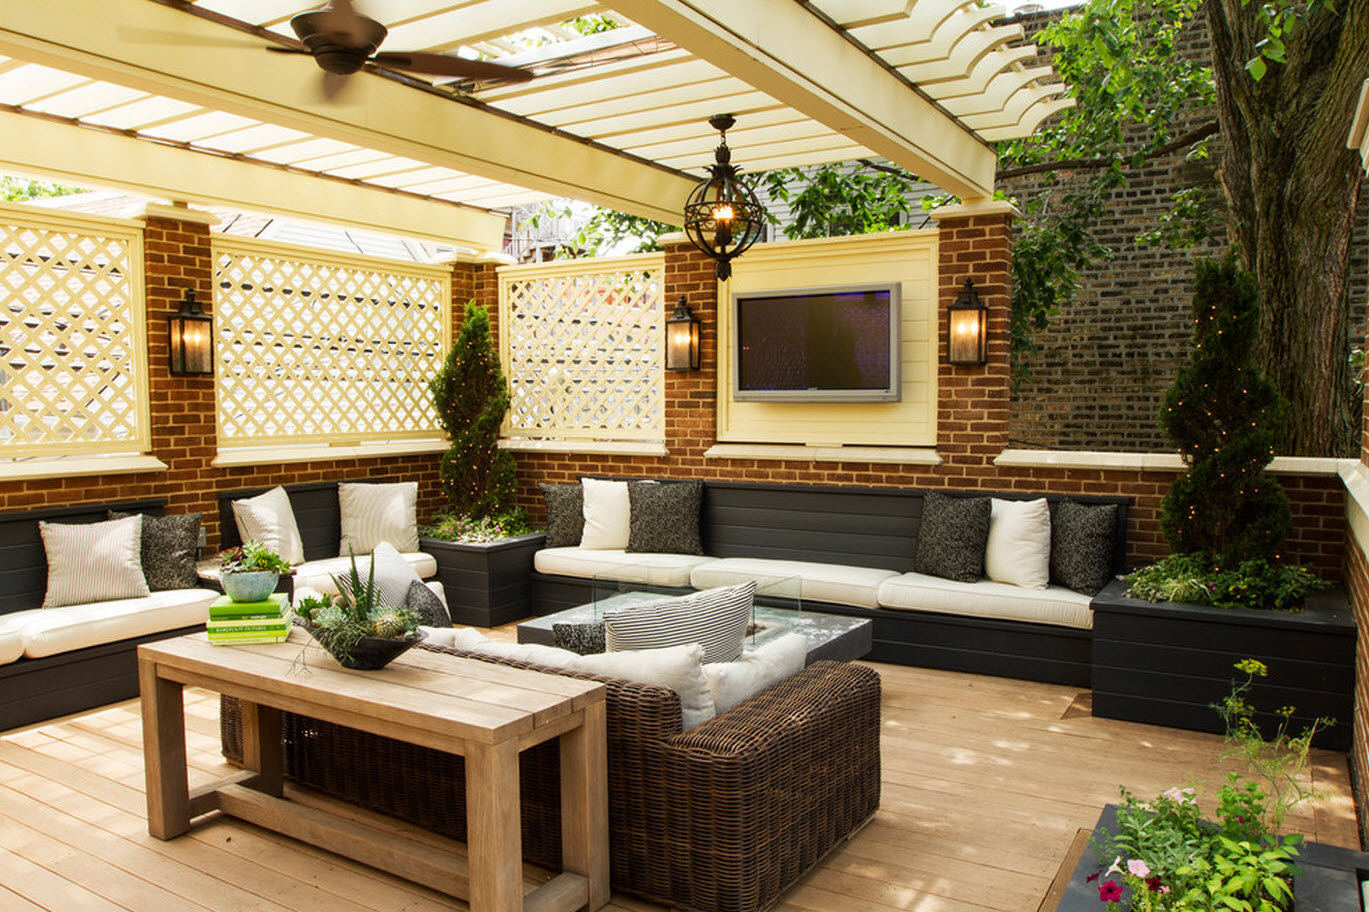 Part 1 10 Designs To Give Life To Your Terrace A Space Of